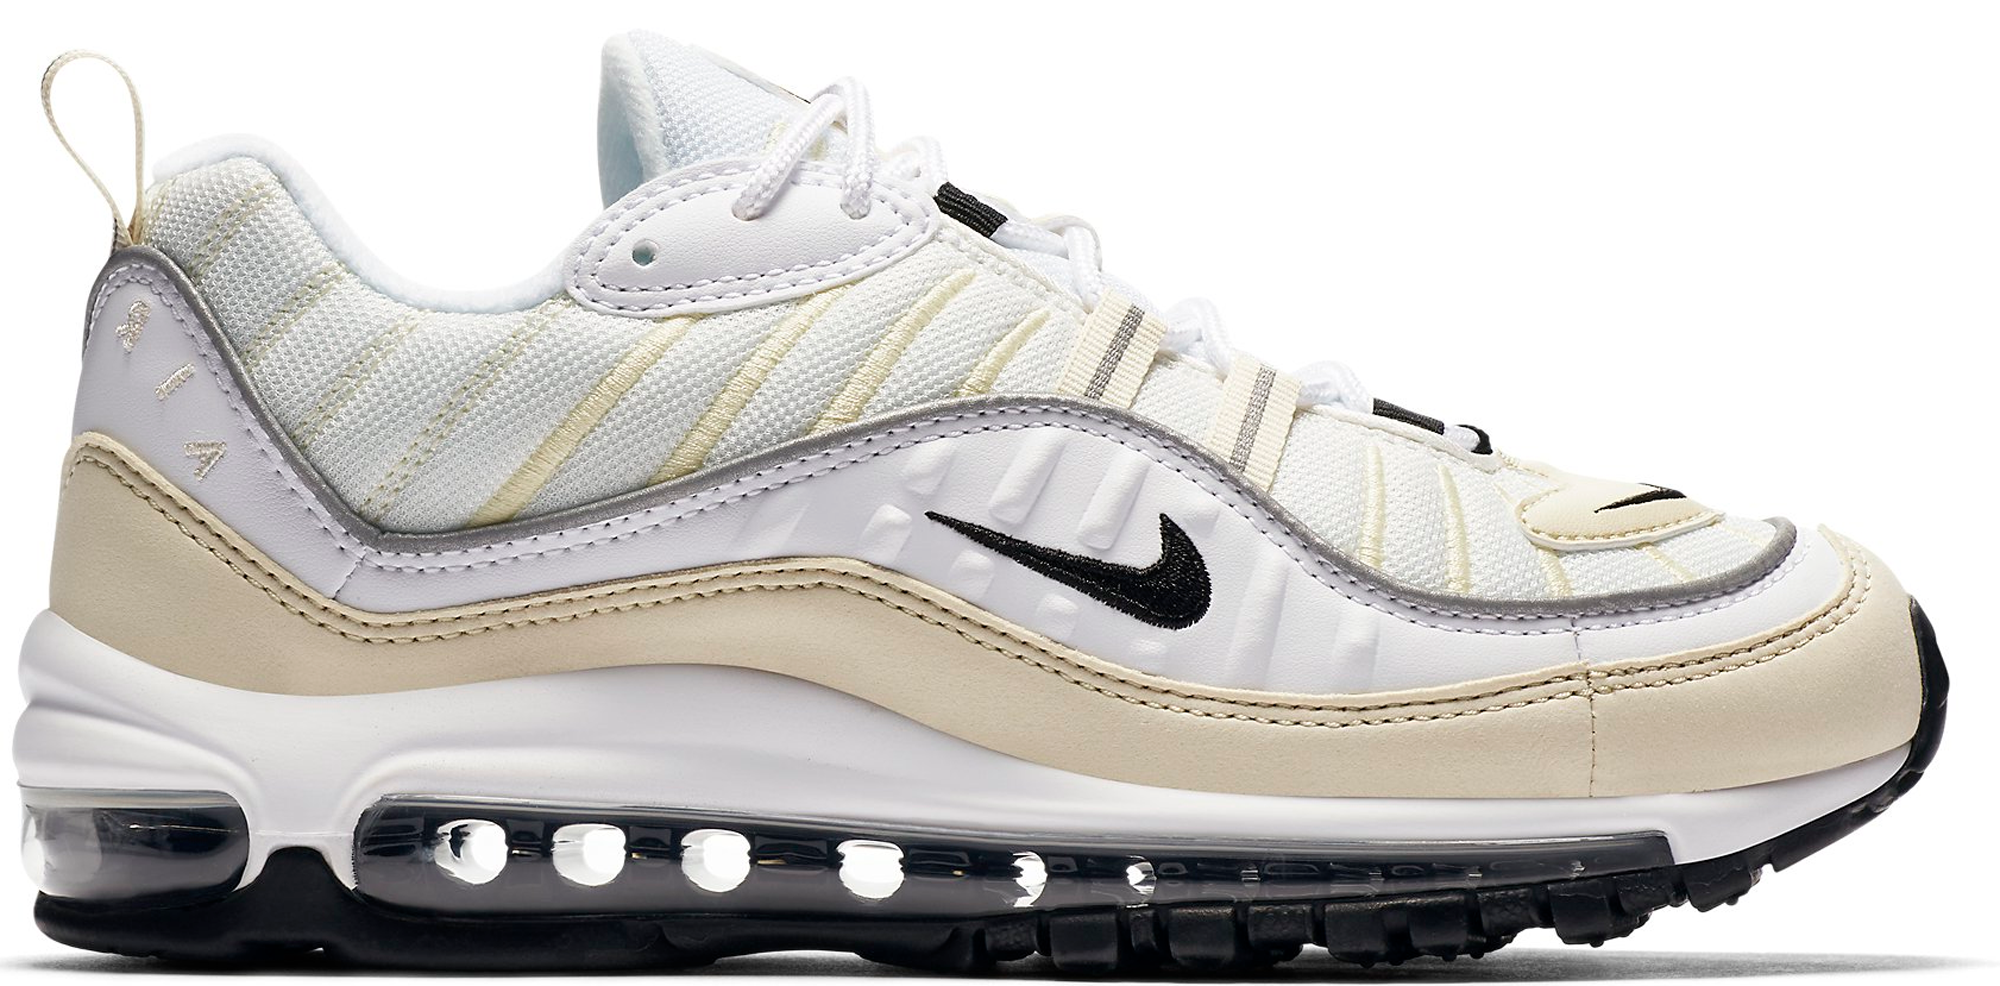 finest selection bc96e 07b06 Women's Nike Air Max 98 Fossil - StockX News